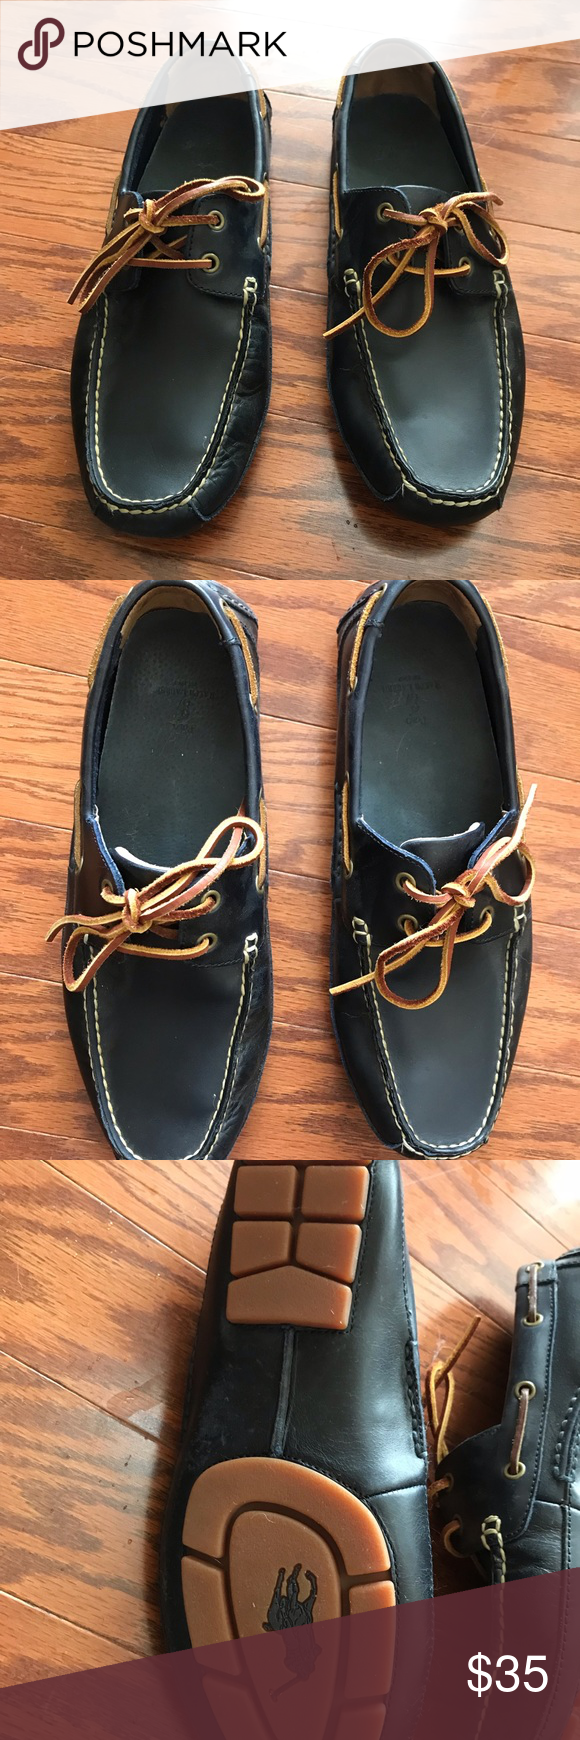 Men's NEW loafers - POLO | Loafers